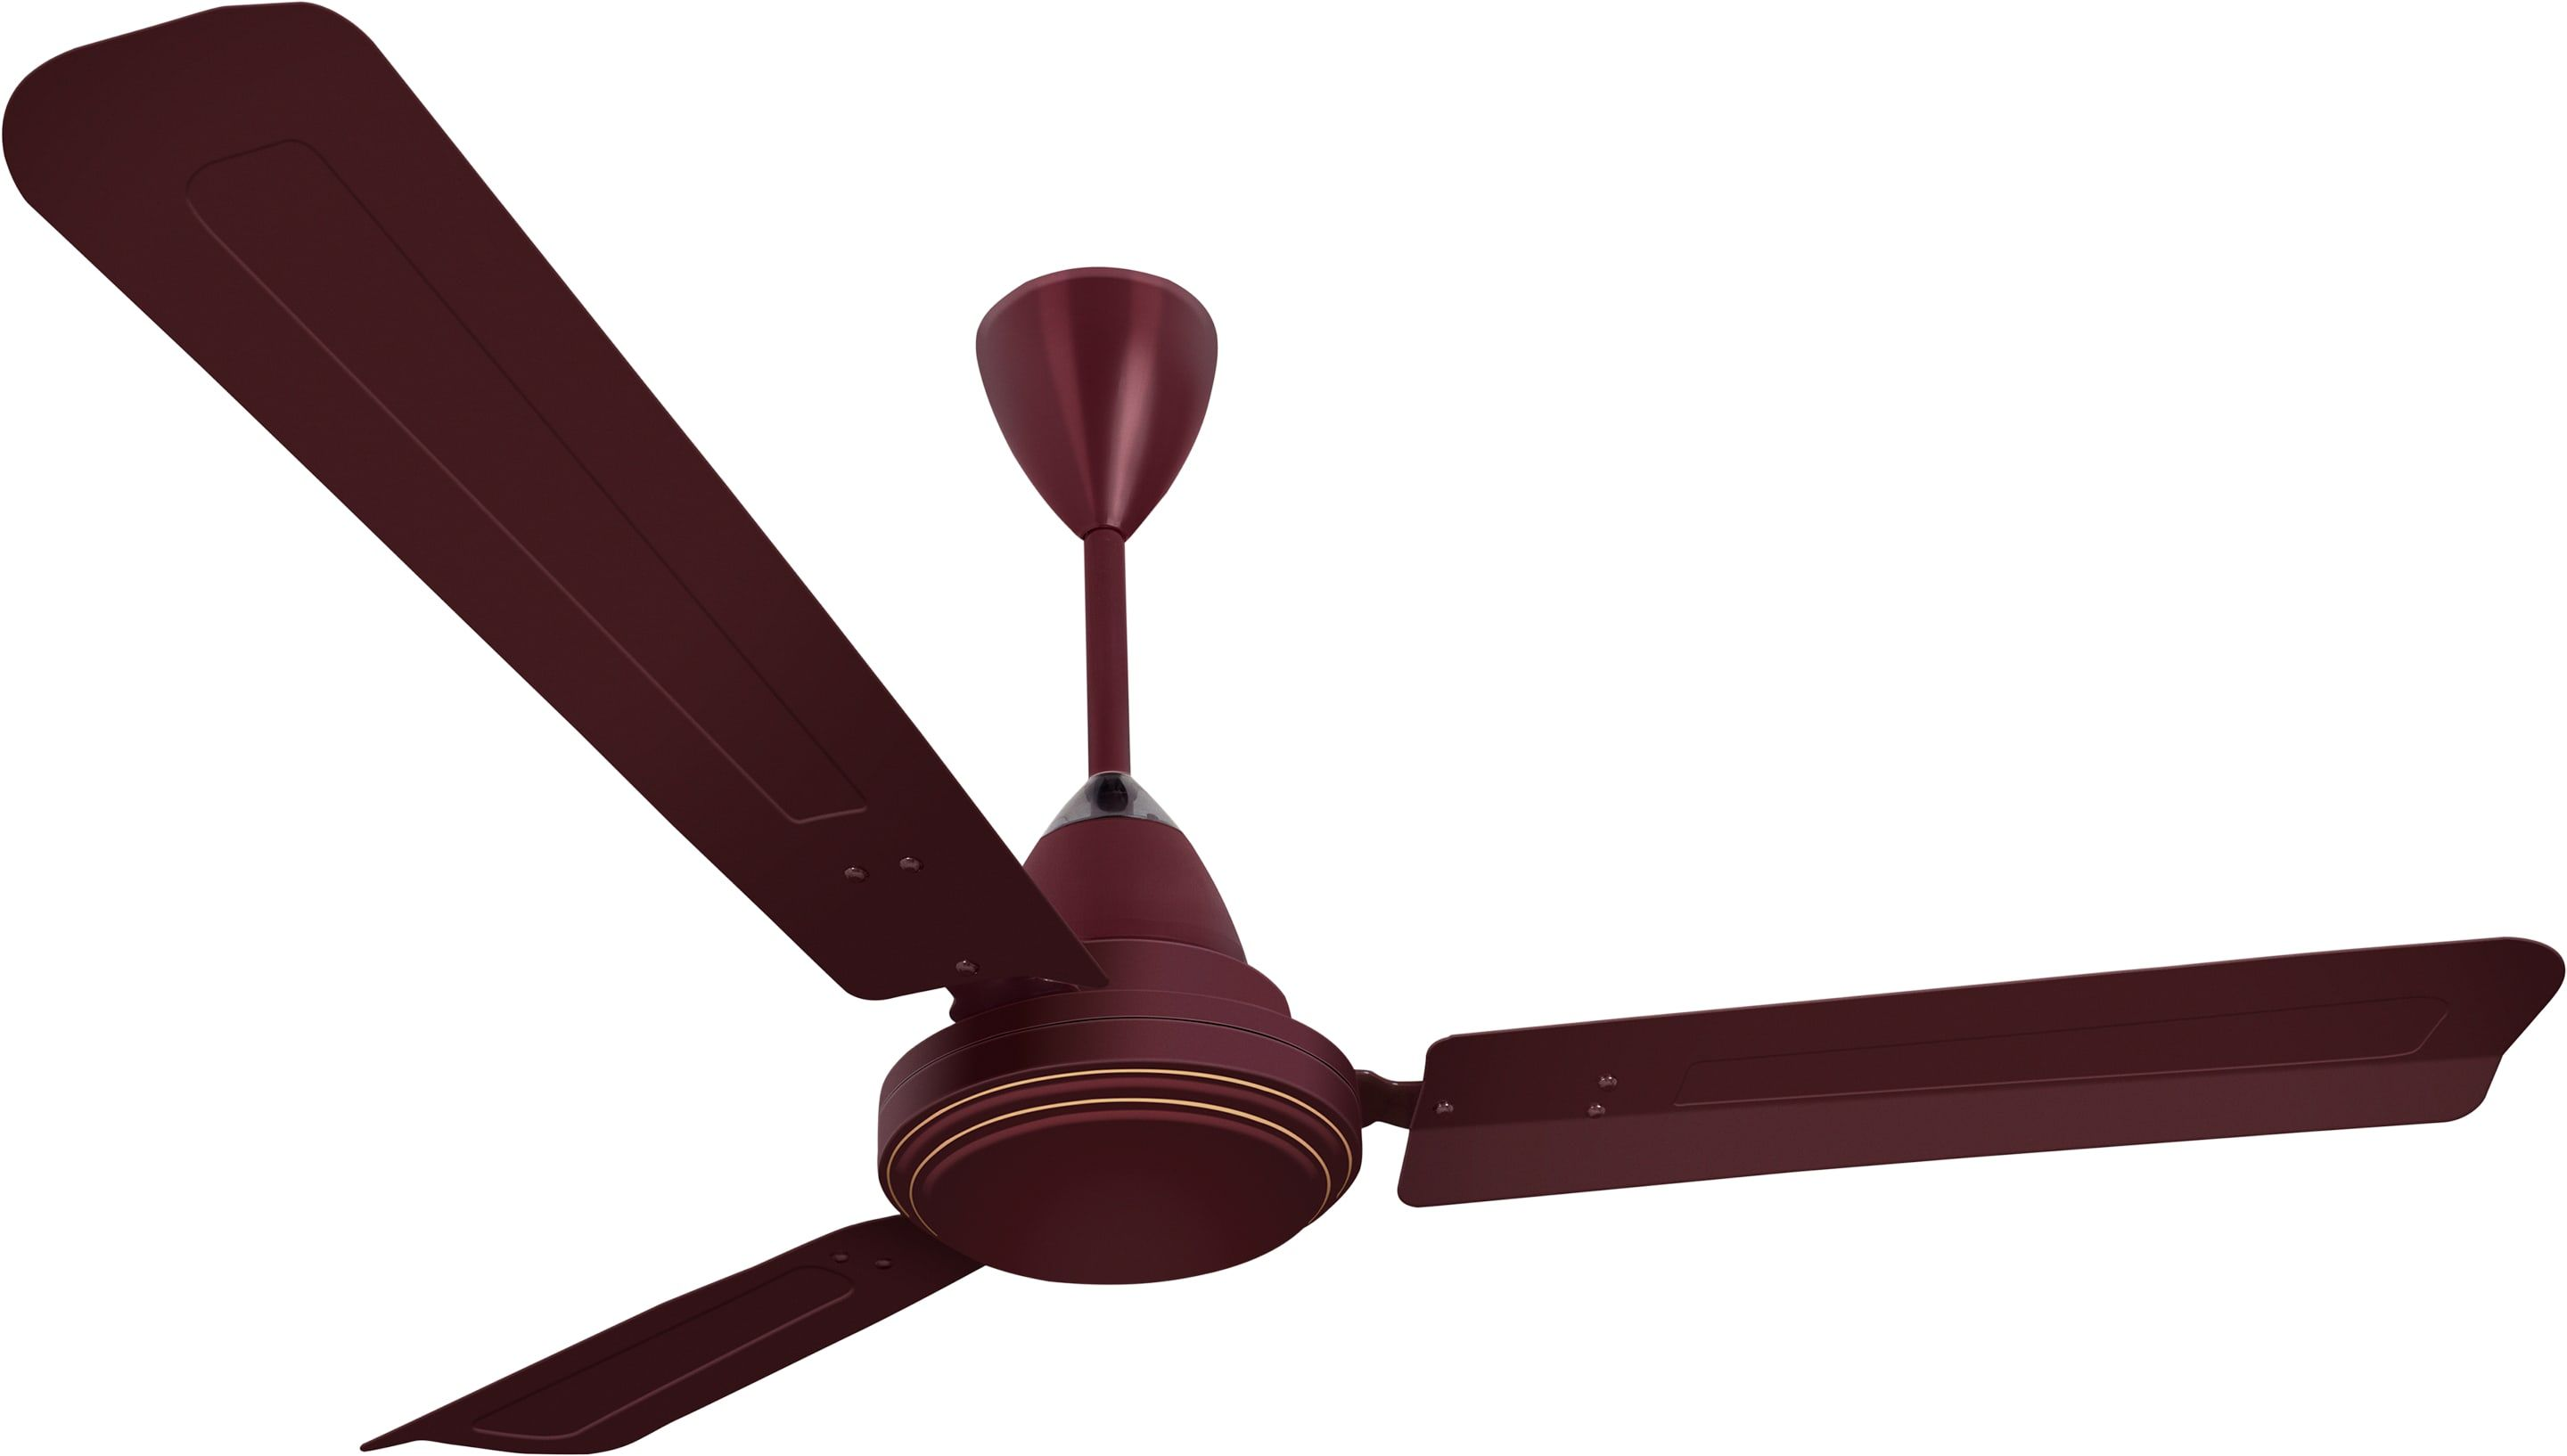 Orient ecotech plus energy efficient ceiling fan remote yes orient ecotech plus energy efficient ceiling fan remote yes energy saving yes power aloadofball Gallery